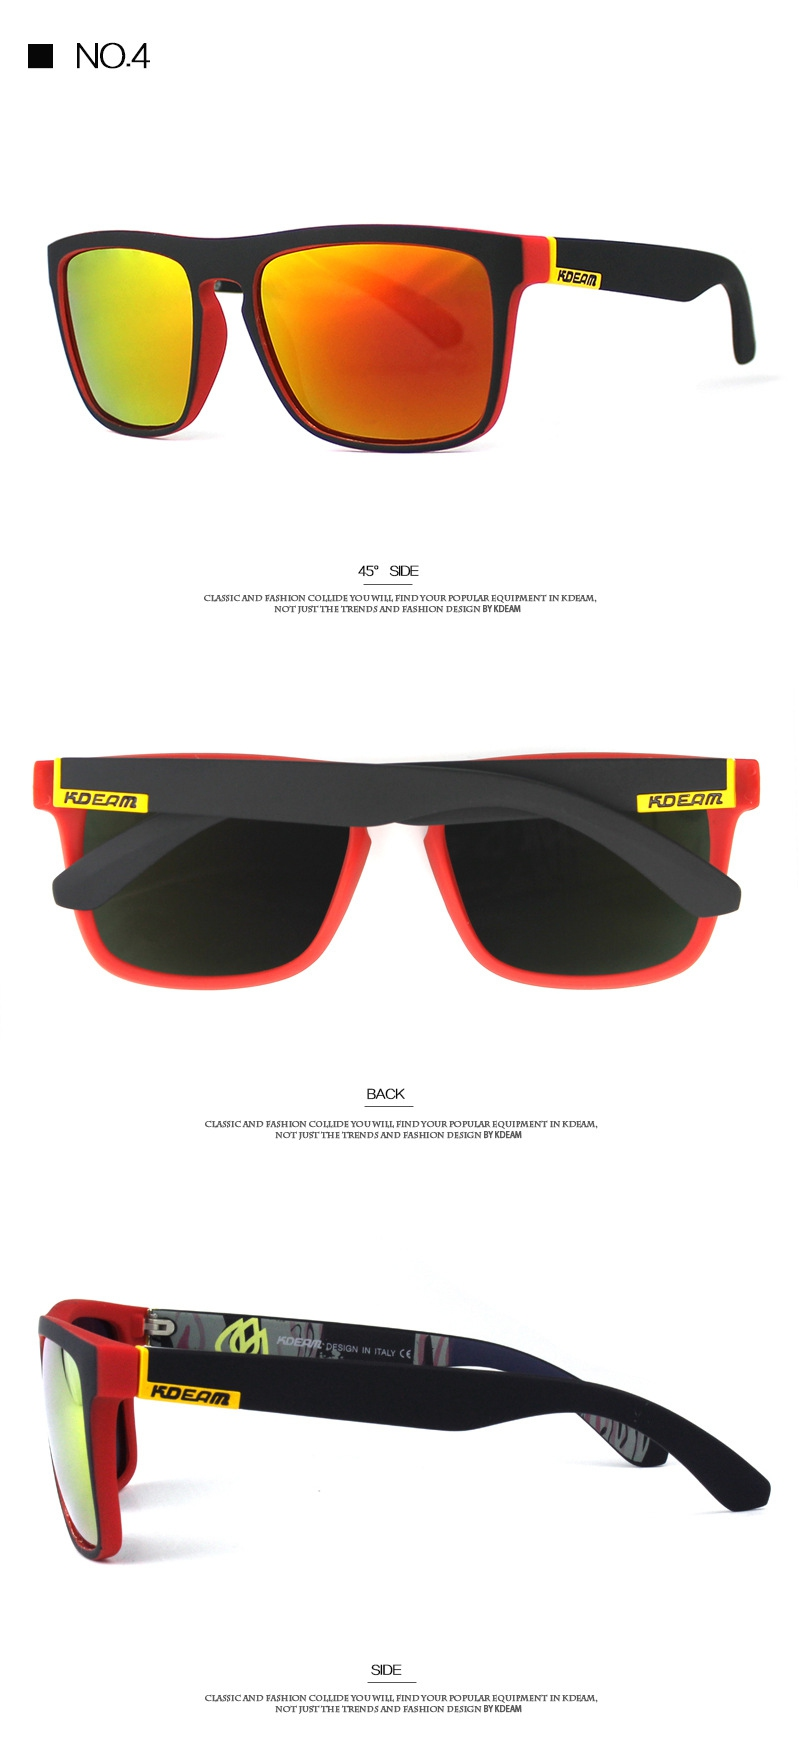 436f8a8220 KDEAM Polarized Sunglasses Men Outdoor Sport Cycling KD156-C4